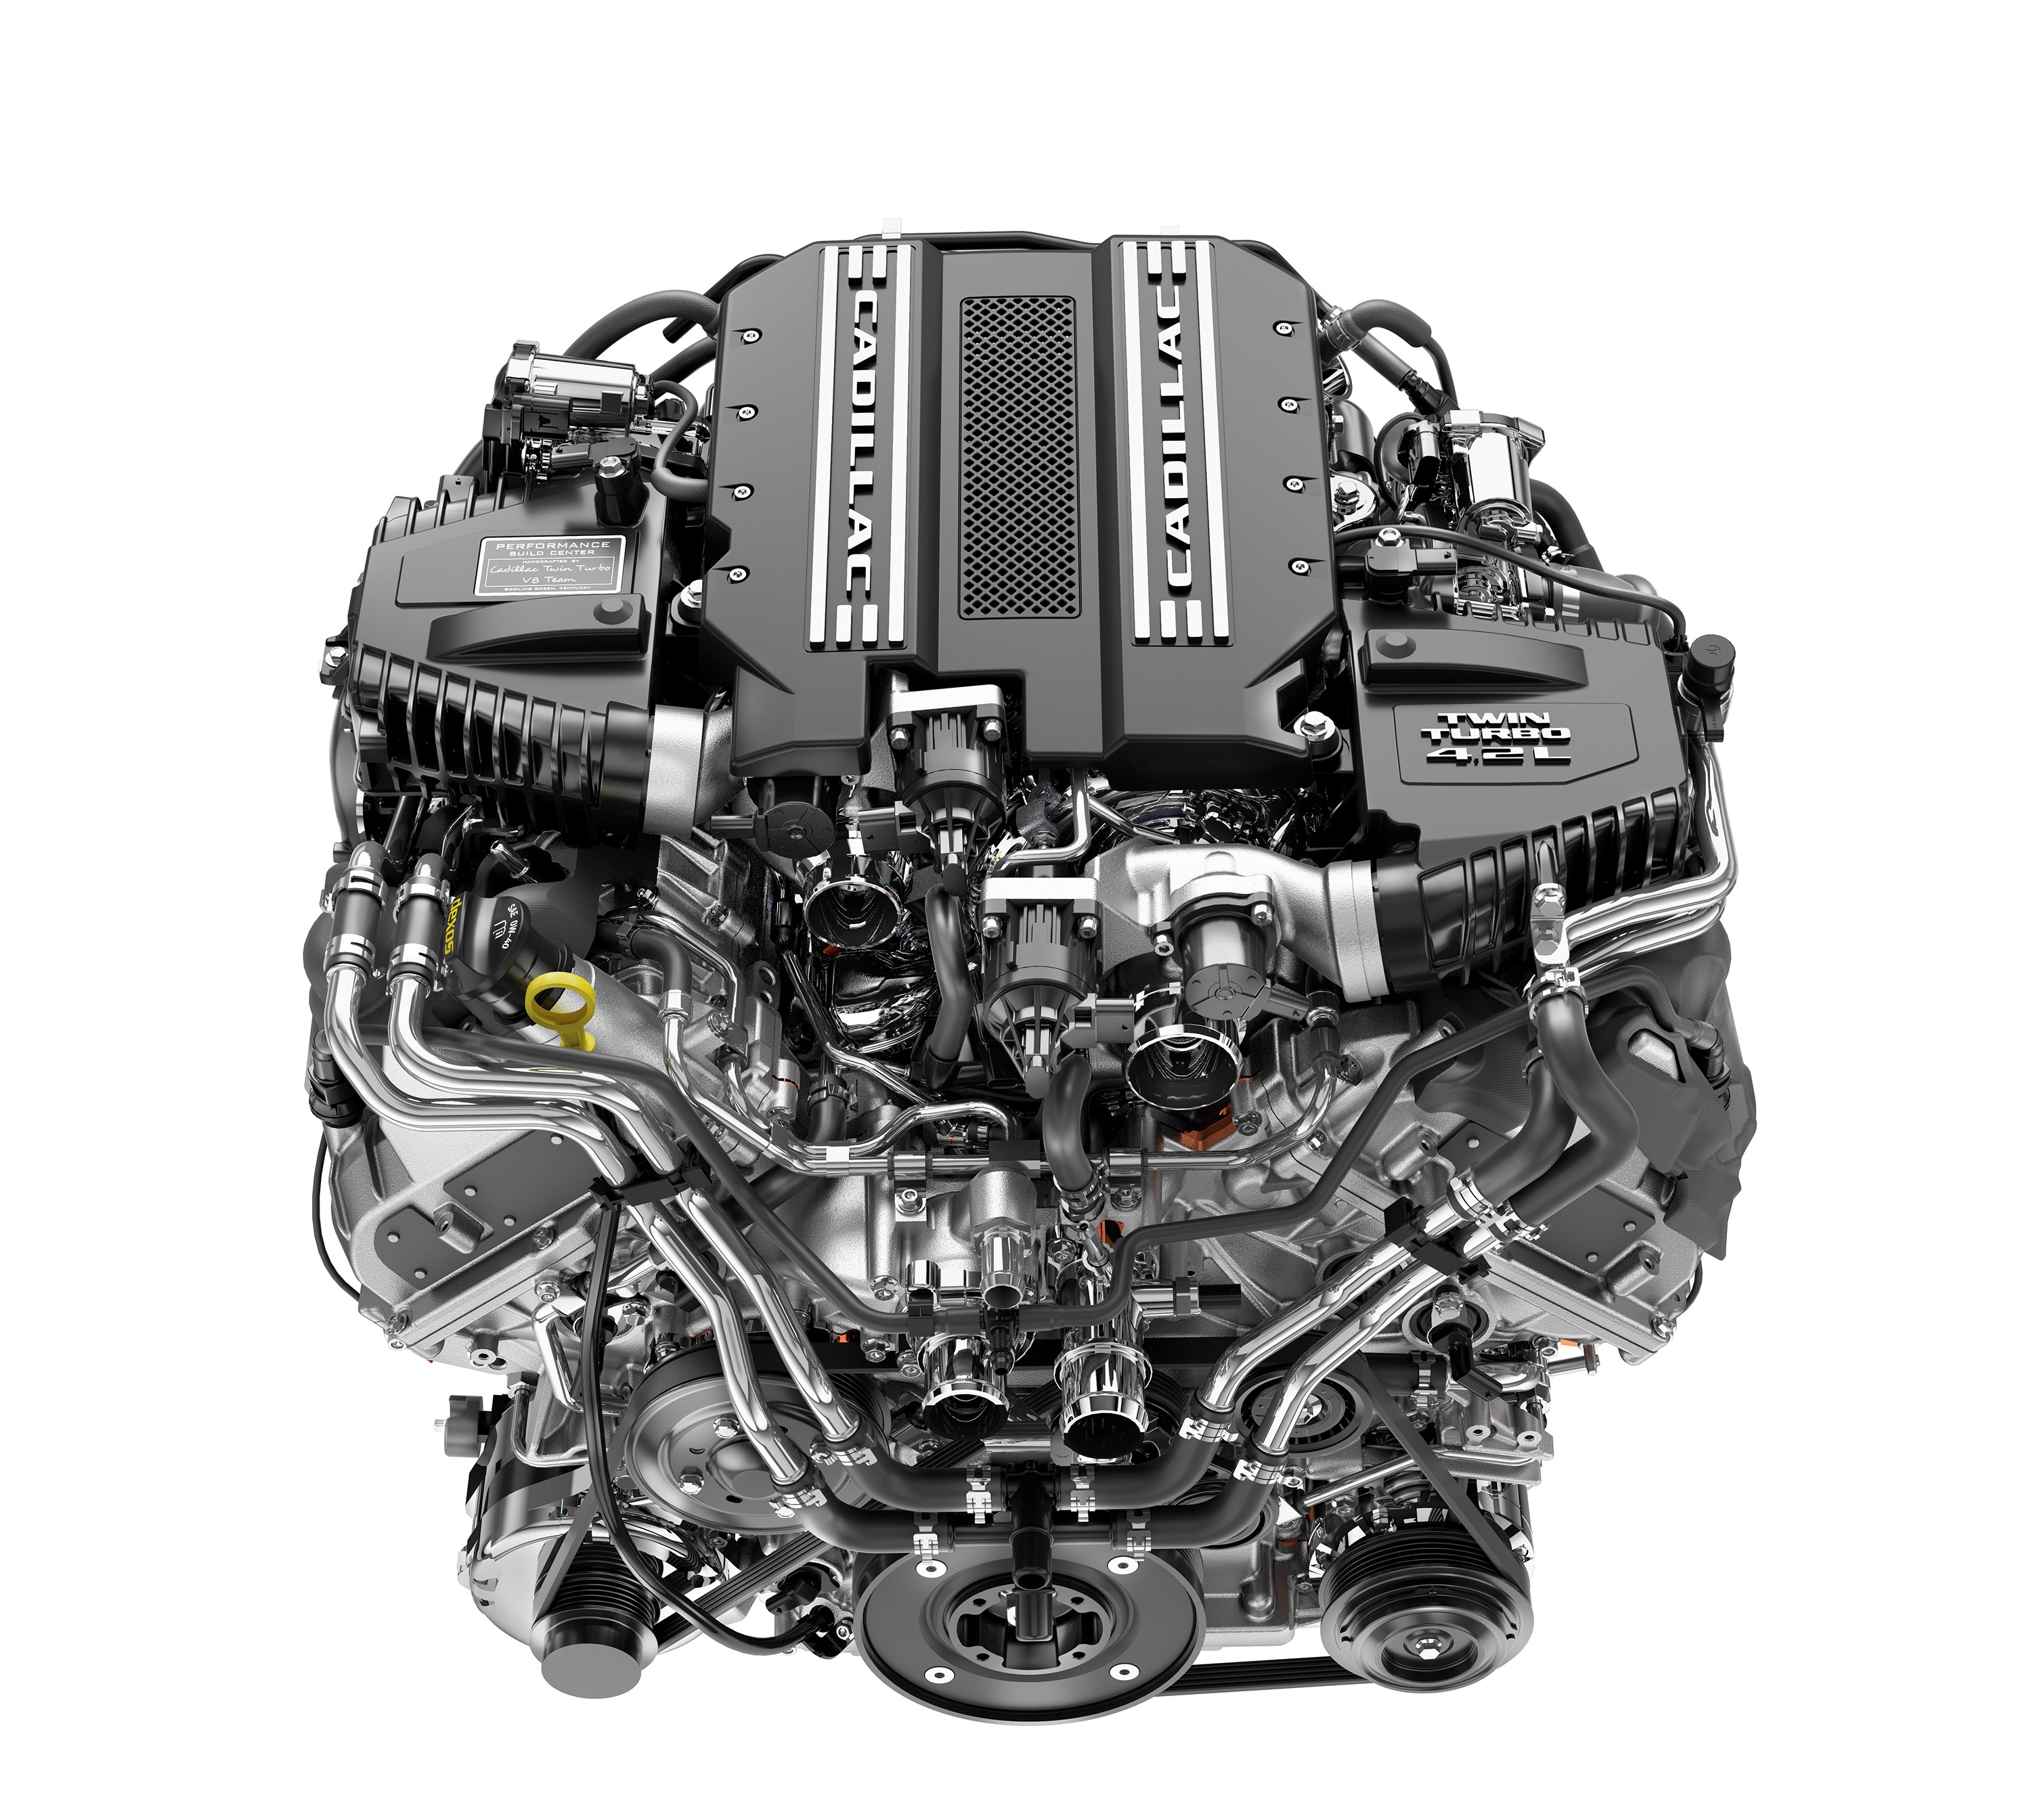 Northstar Engine Diagram the Cadillac V8 is Back In 2019 and More Powerful Than Ever for New Of Northstar Engine Diagram